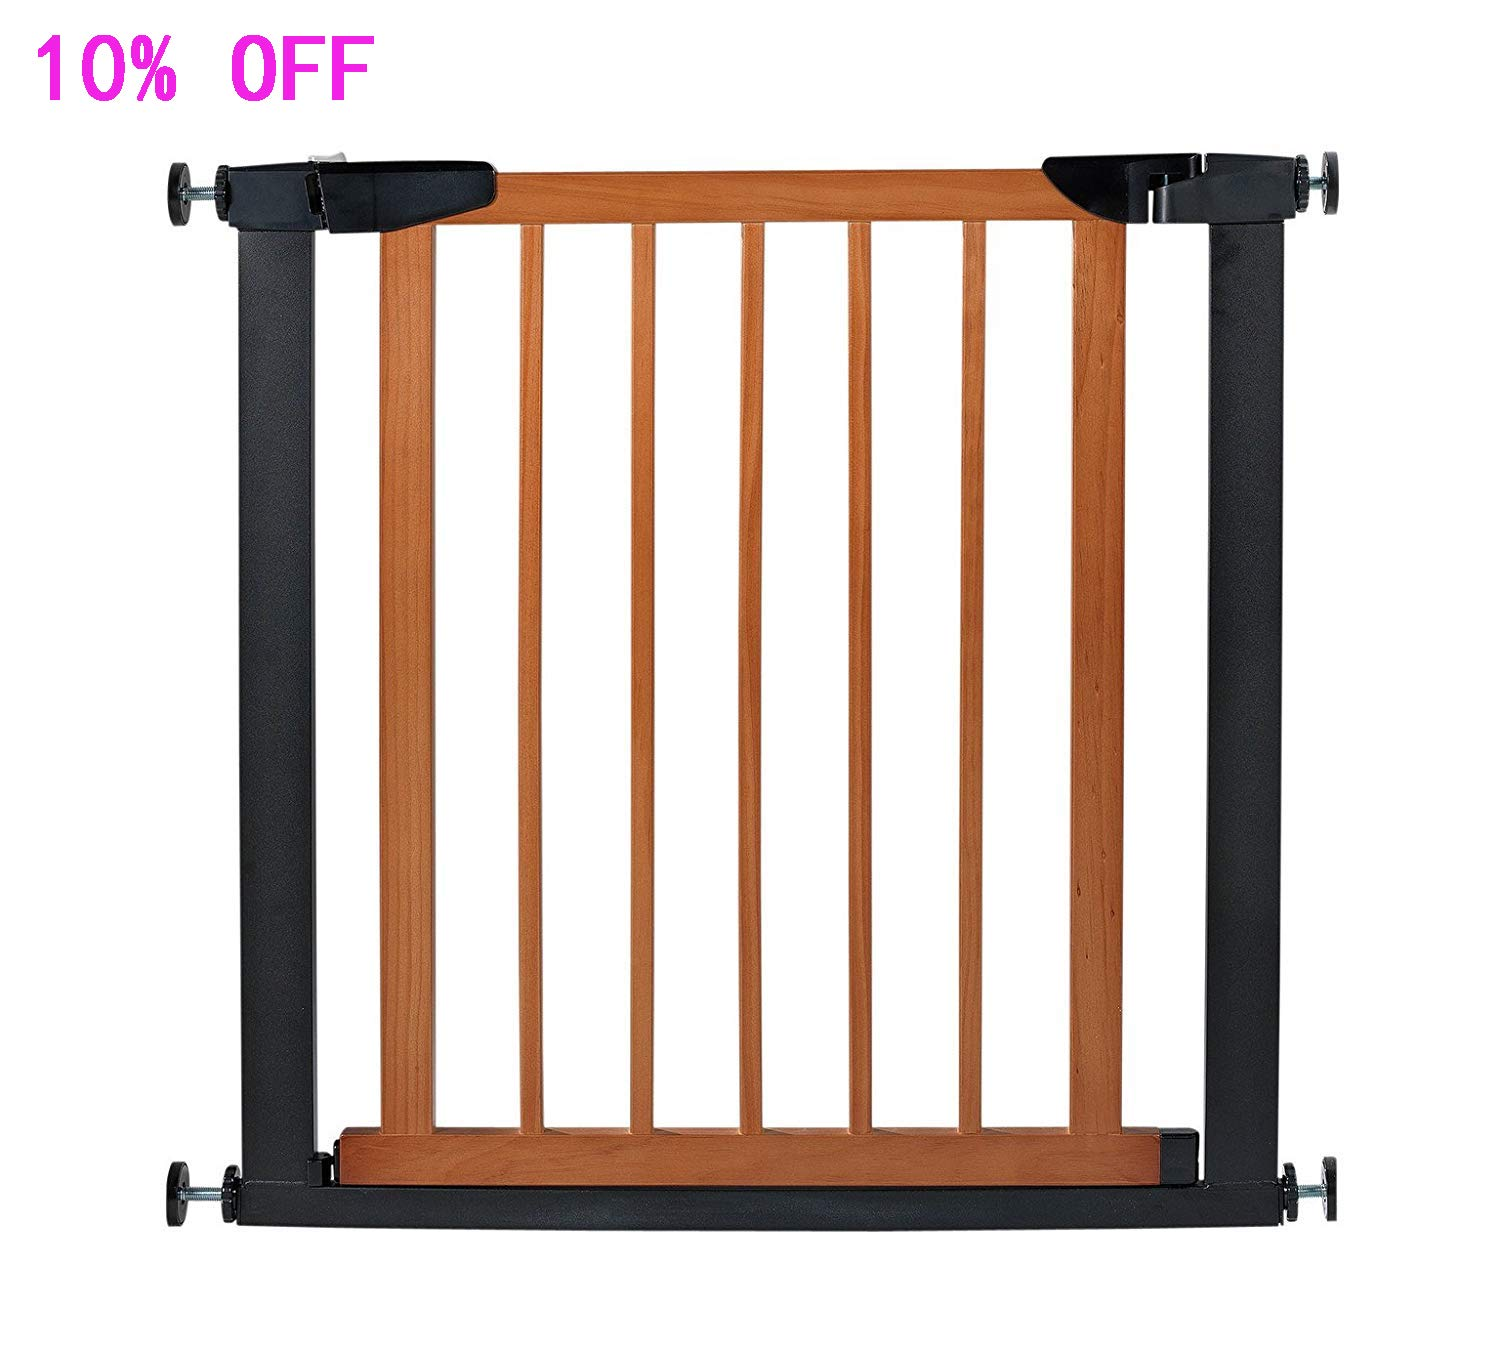 Fairy Baby Pet Baby Gate Narrow Extra Wide for Stairs Metal and Wood Pressure Mounted Safety Walk Through Gate,29 High,Fit Spaces Between 29.53 -32.28 ,Coffee Black 3-7 Days Delivered